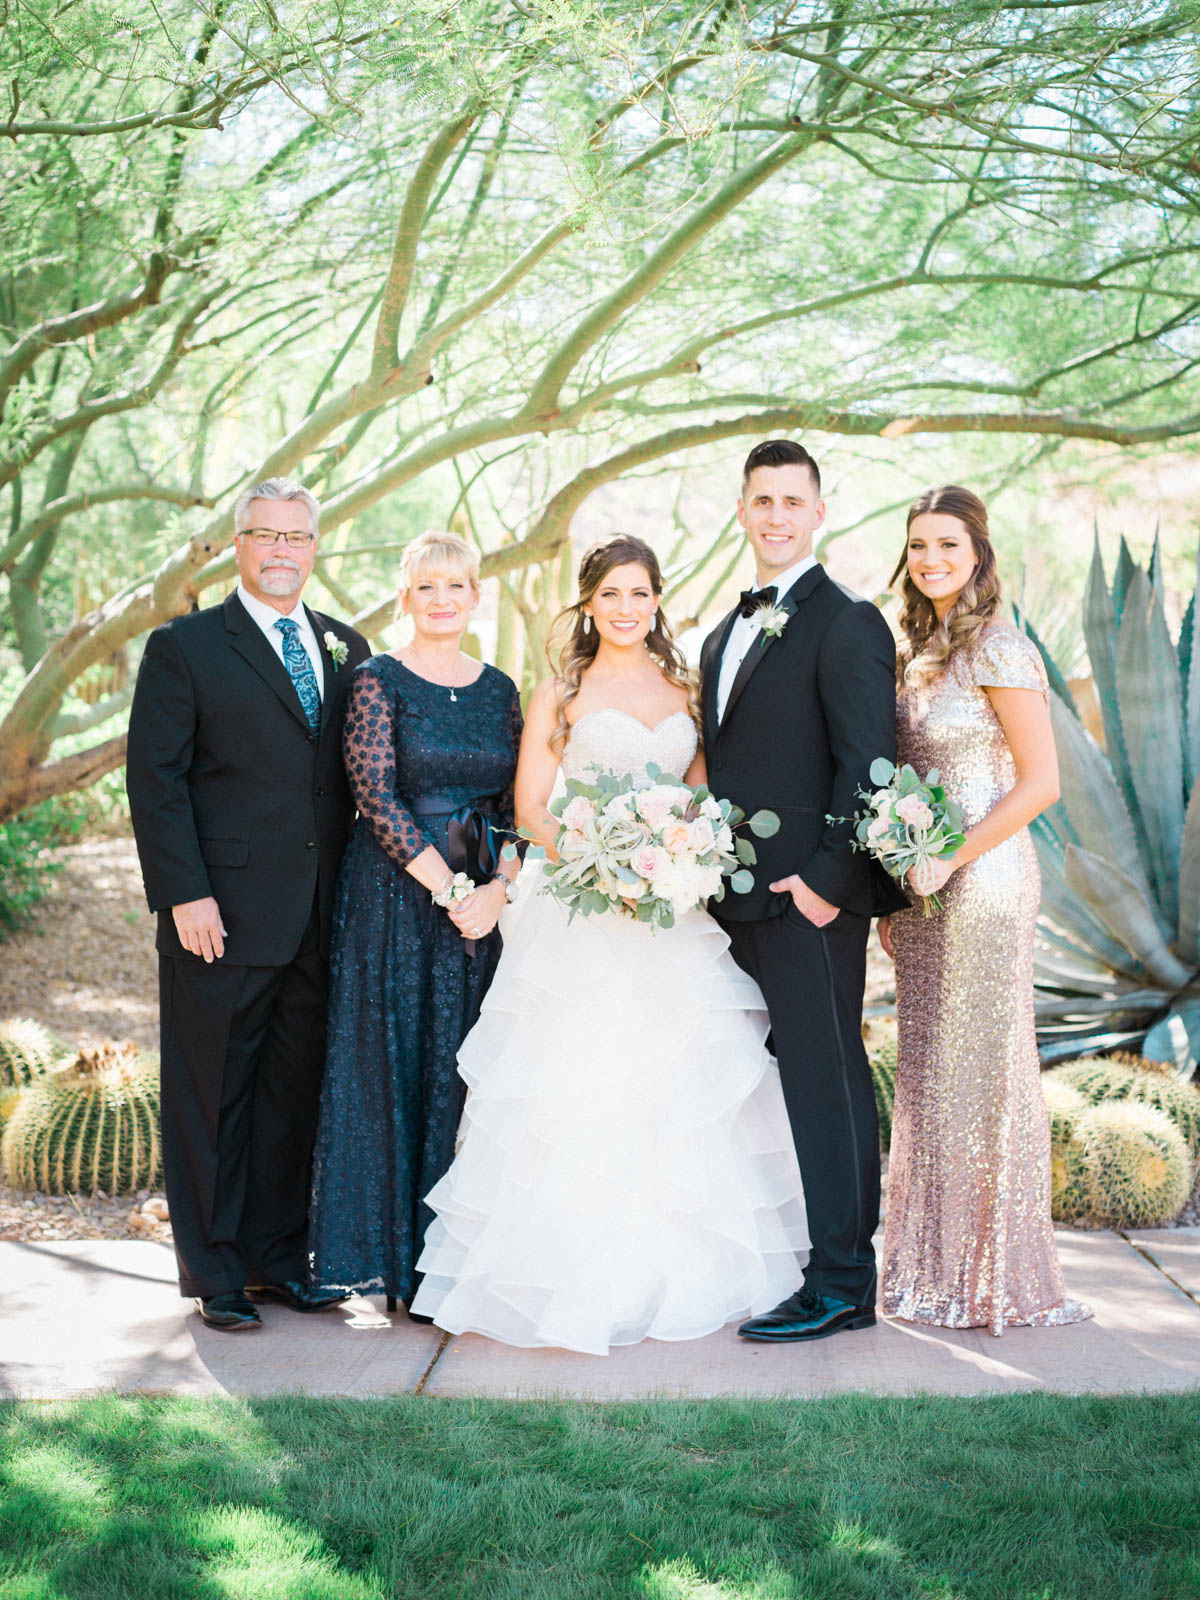 Family Photos captured by Tucson Wedding Photographers Betsy & John